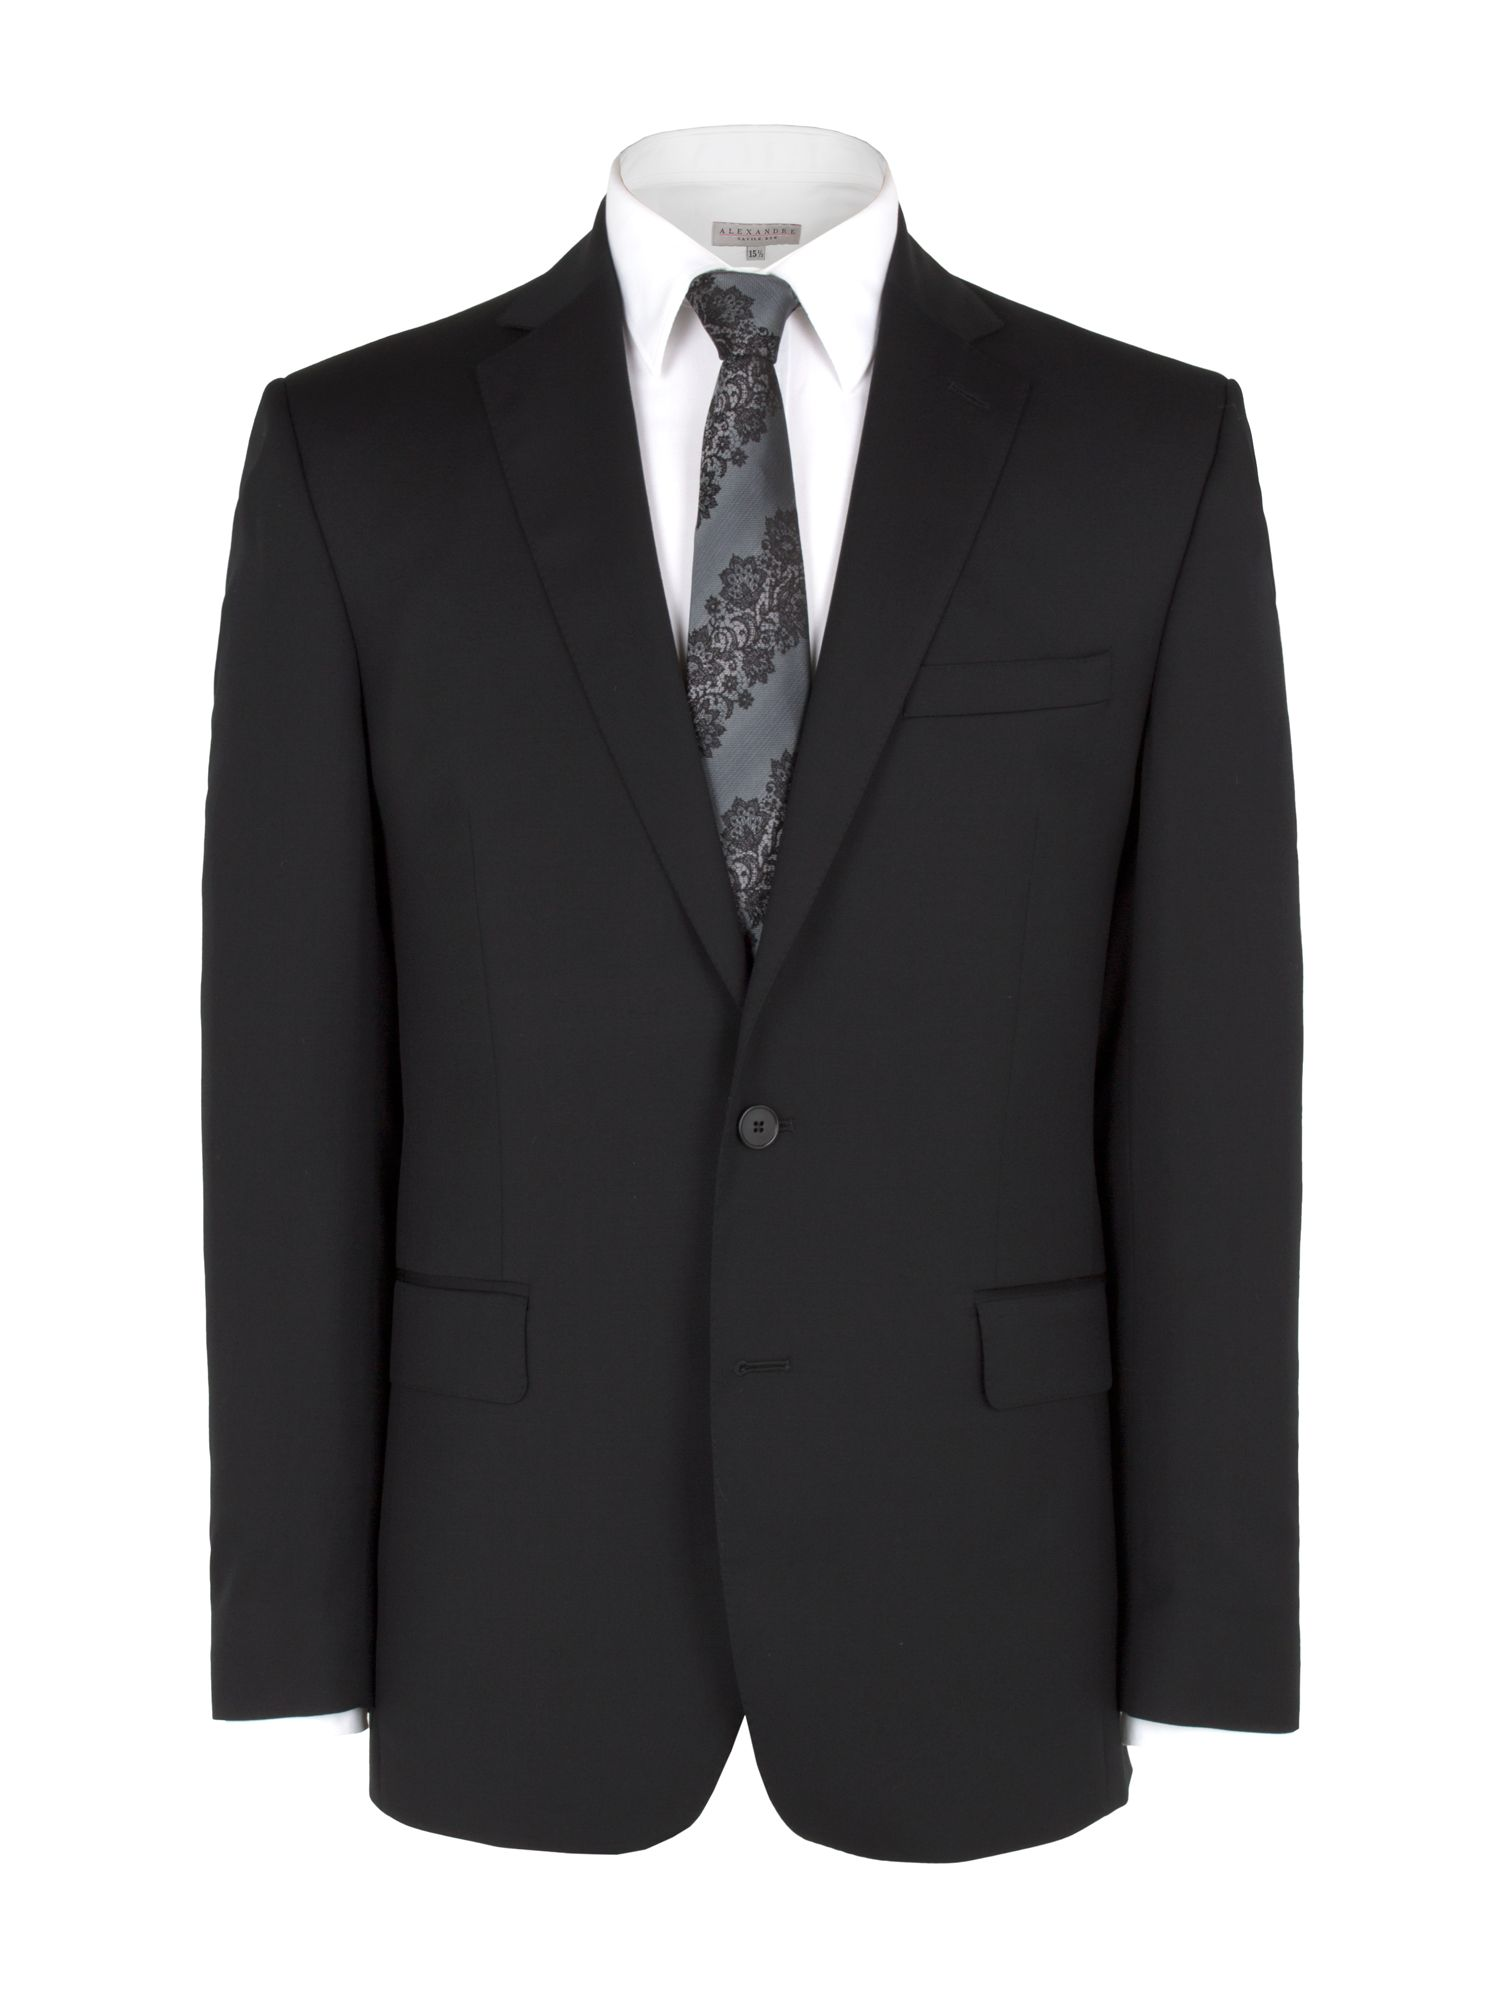 Plain black core suit